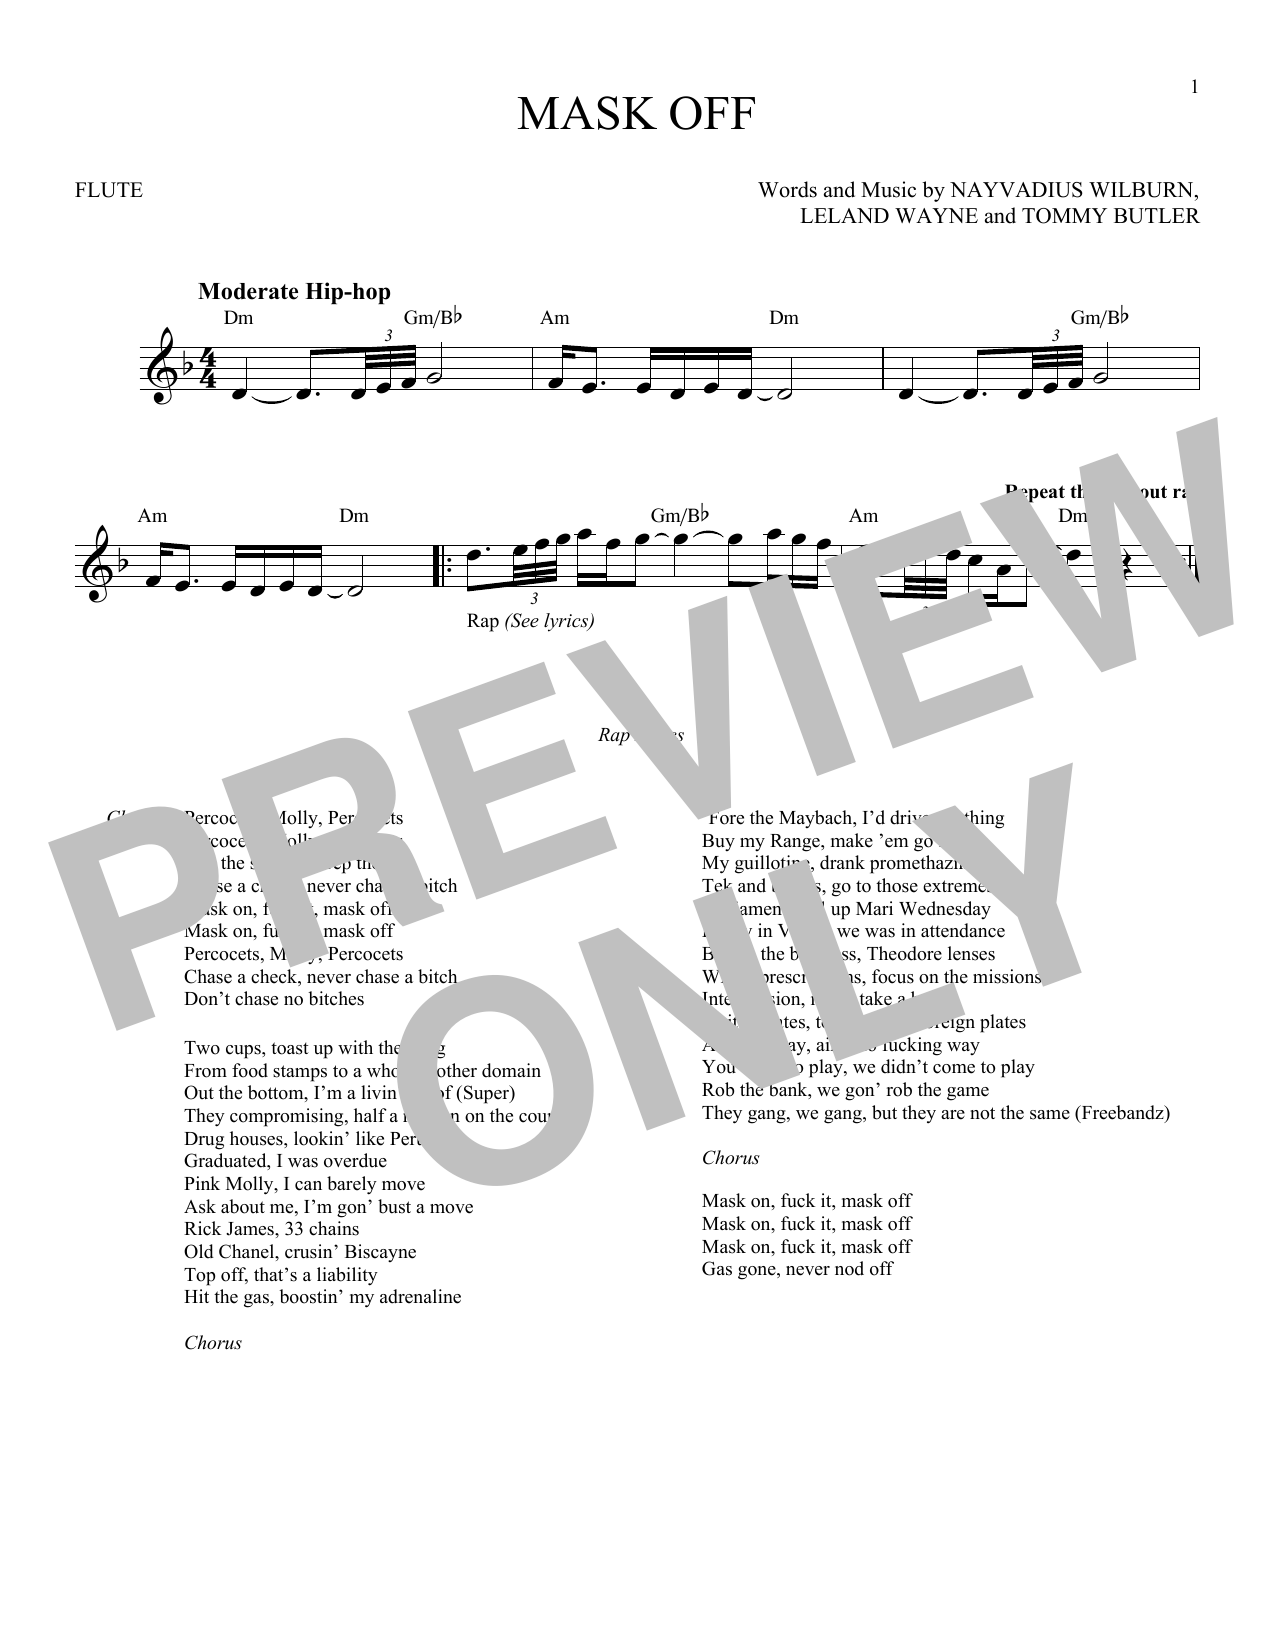 graphic relating to Printable Flute Sheet Music called Upcoming Mask Off Sheet Songs Notes, Chords Obtain Printable Flute - SKU: 183834